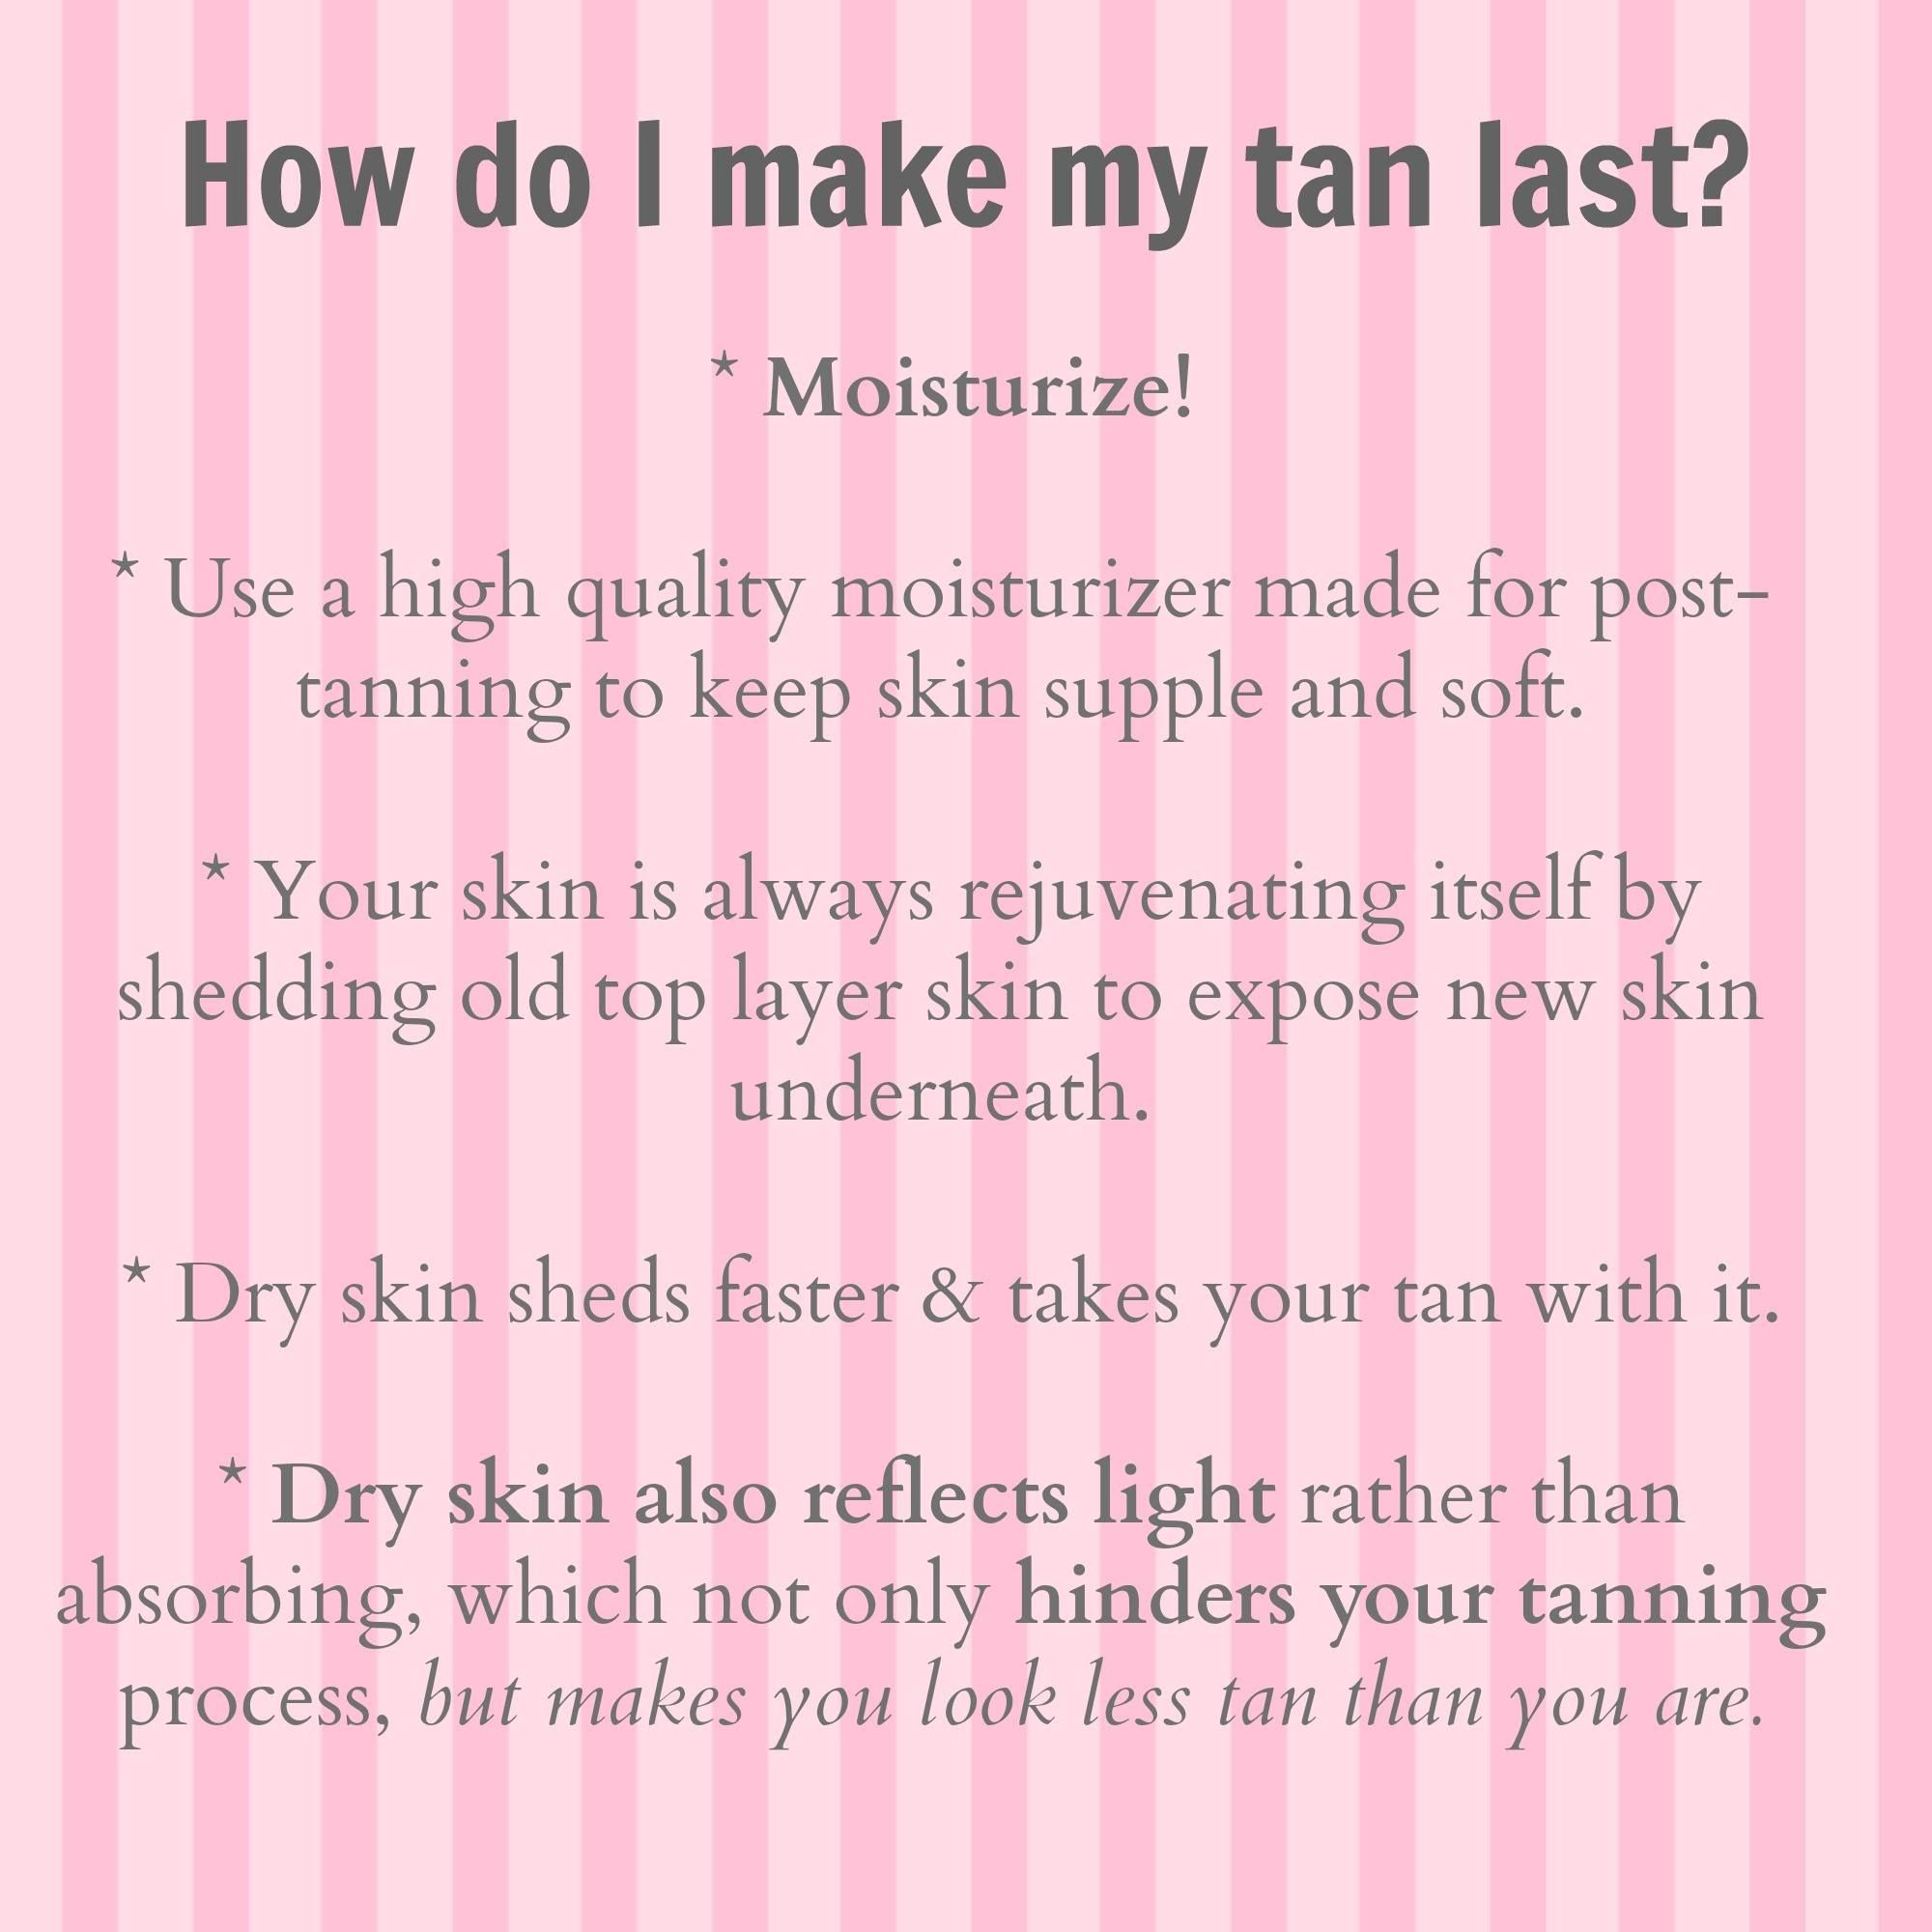 Make That Tan Last Tanning Skin Care Spray Tanning Quotes Mobile Spray Tanning